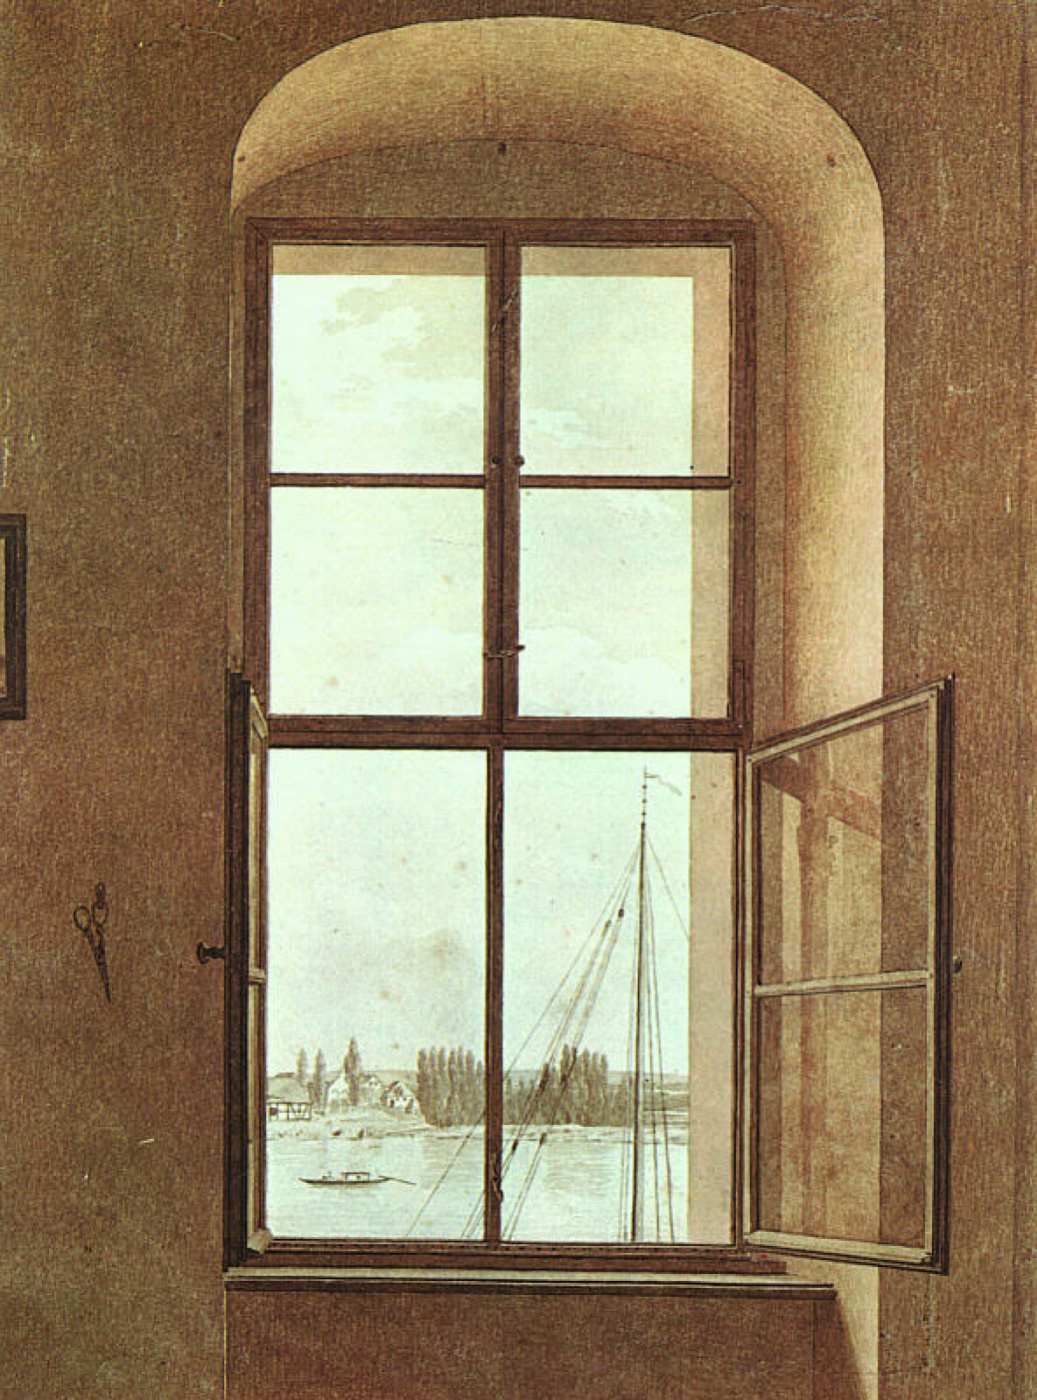 Caspar David Friedrich. View from the artist's studio